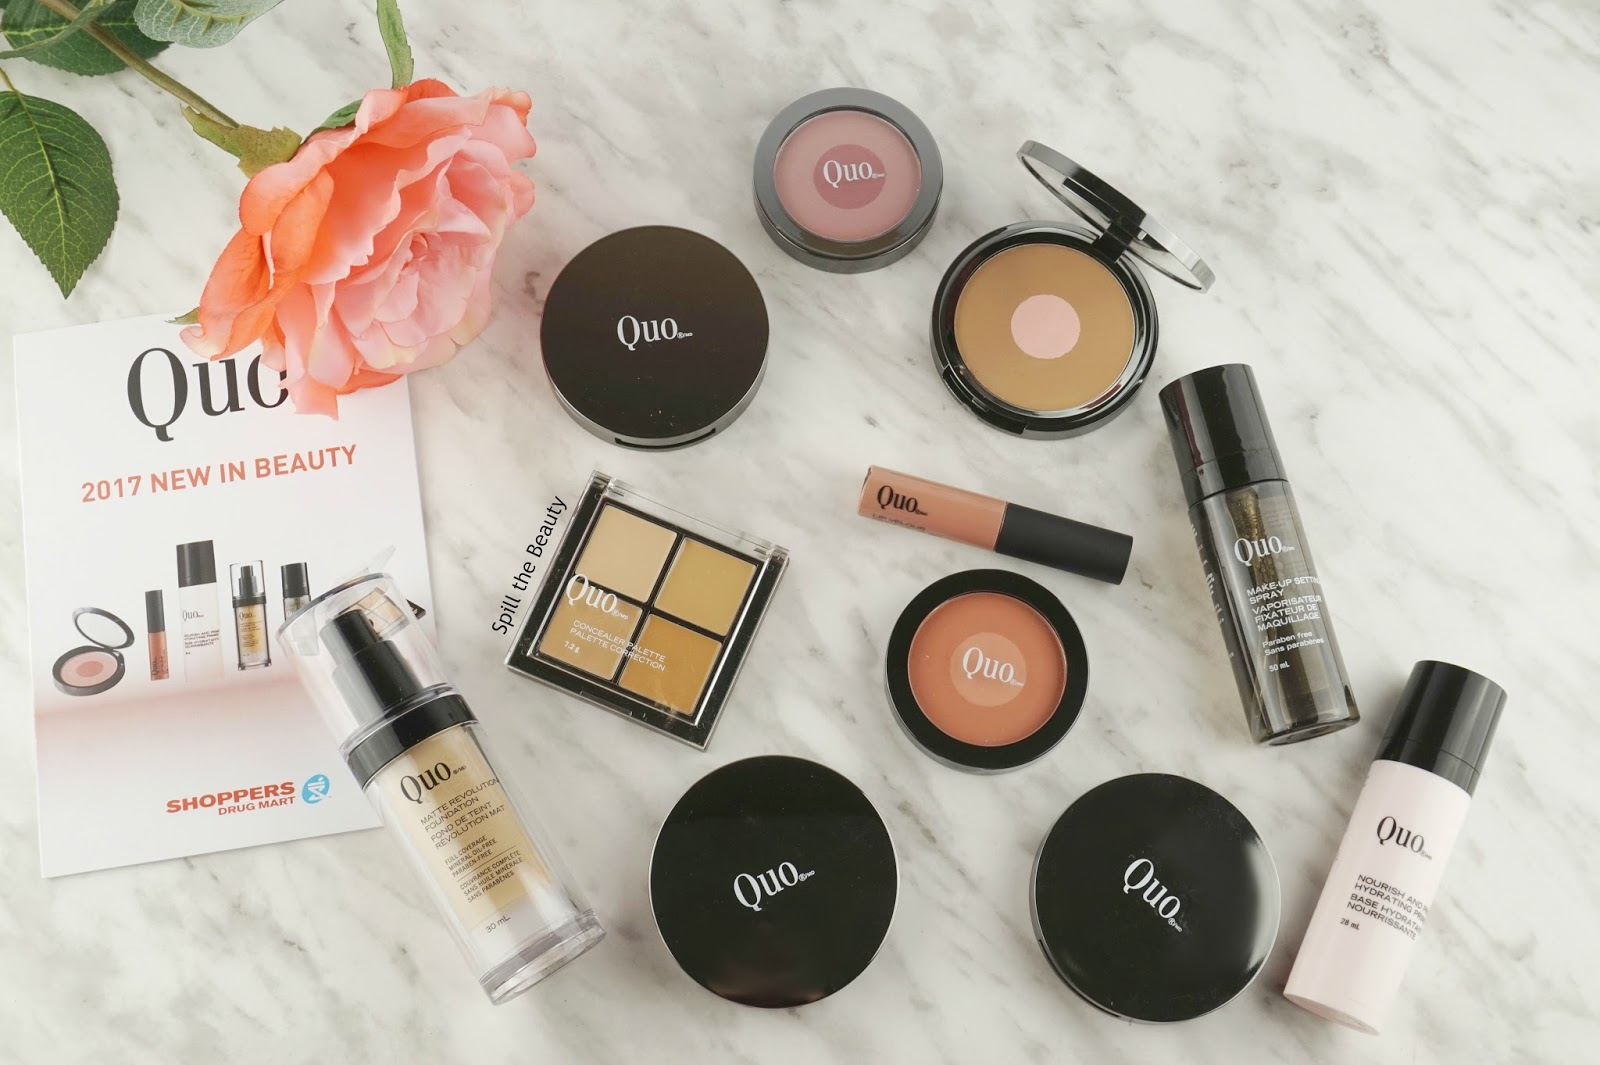 Quo 2017 Beauty Products – Review, Swatches, and Look